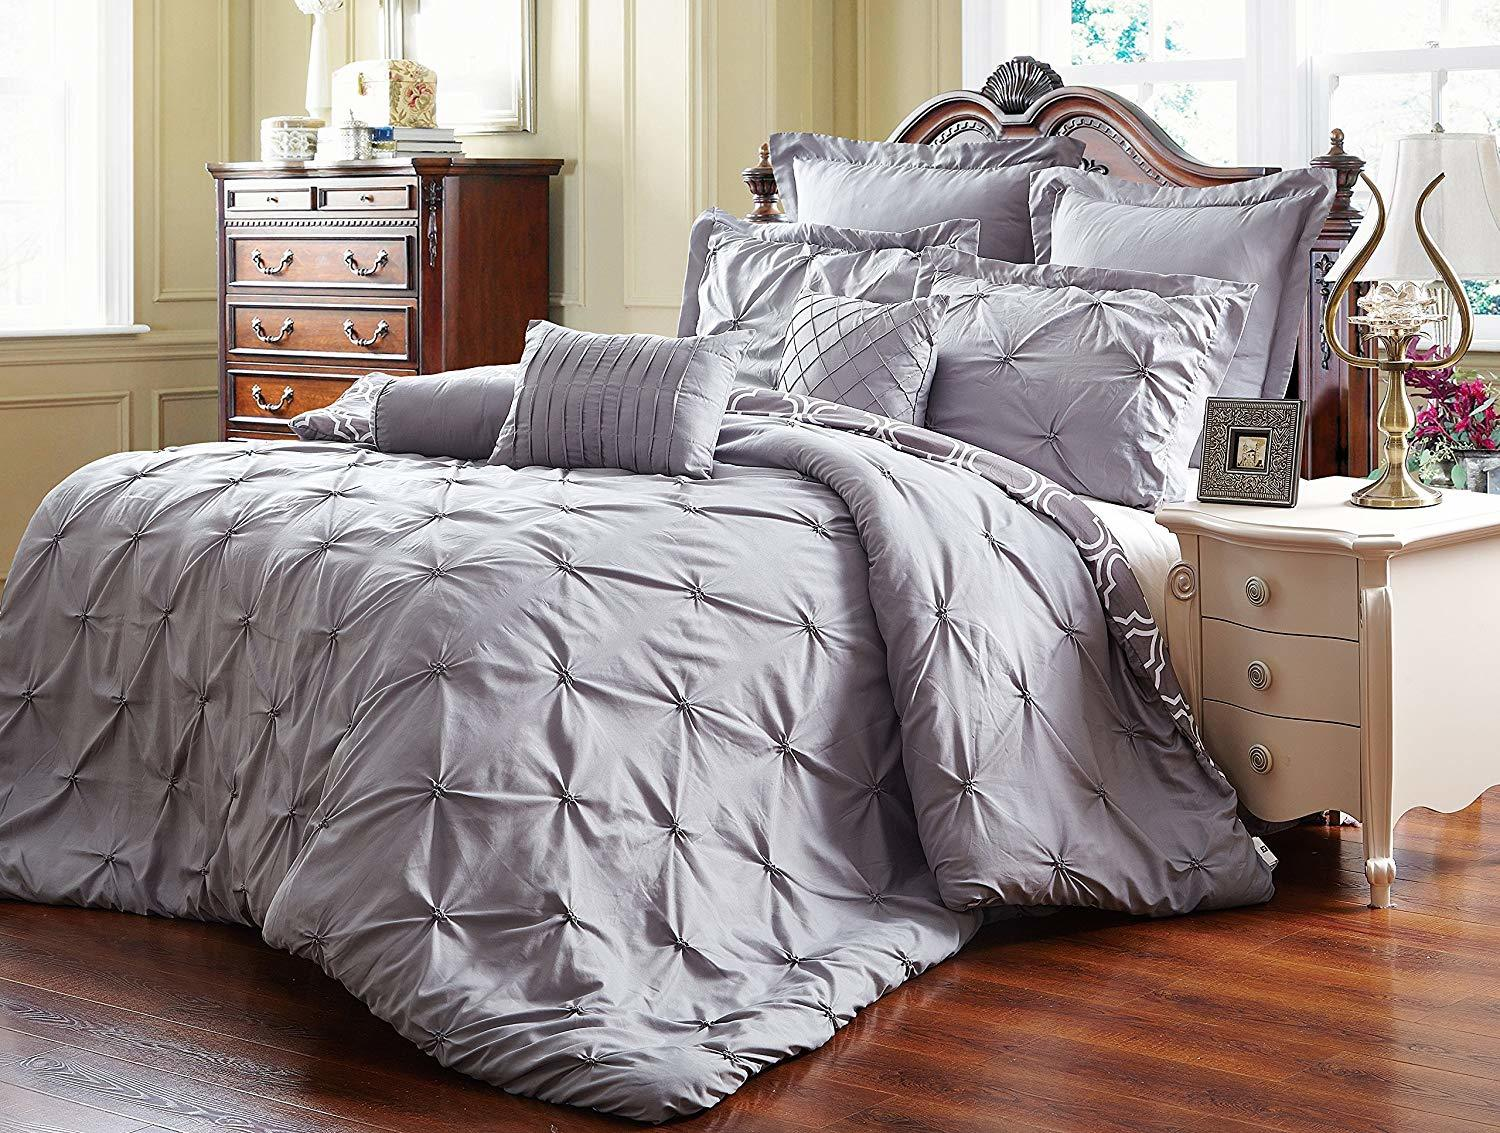 Unique Home 8 Piece Comforter Set